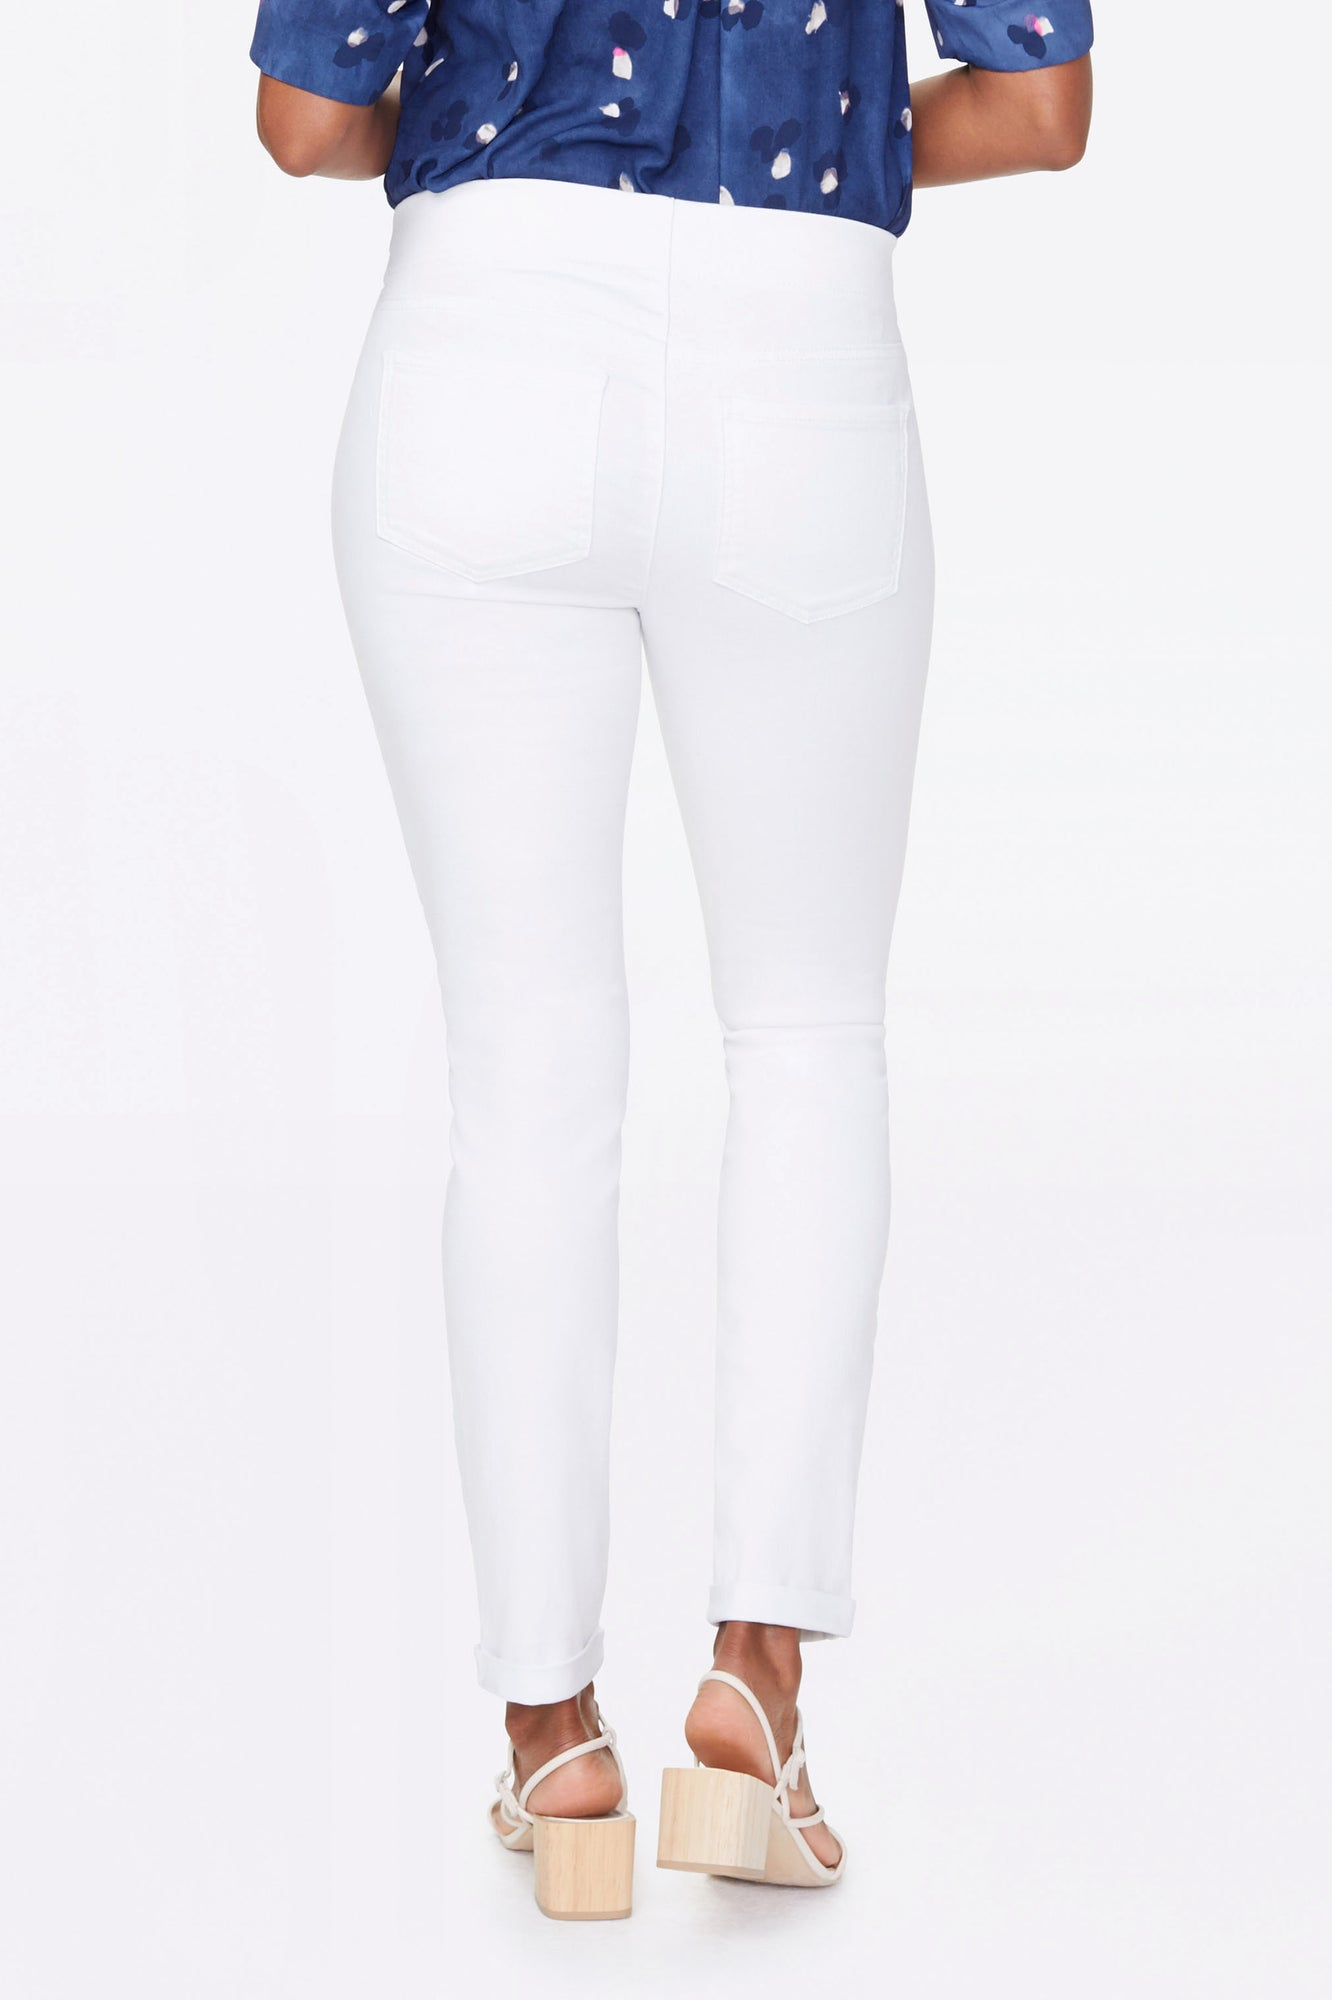 Skinny Ankle Pull-On Jeans In Petite - OPTIC WHITE